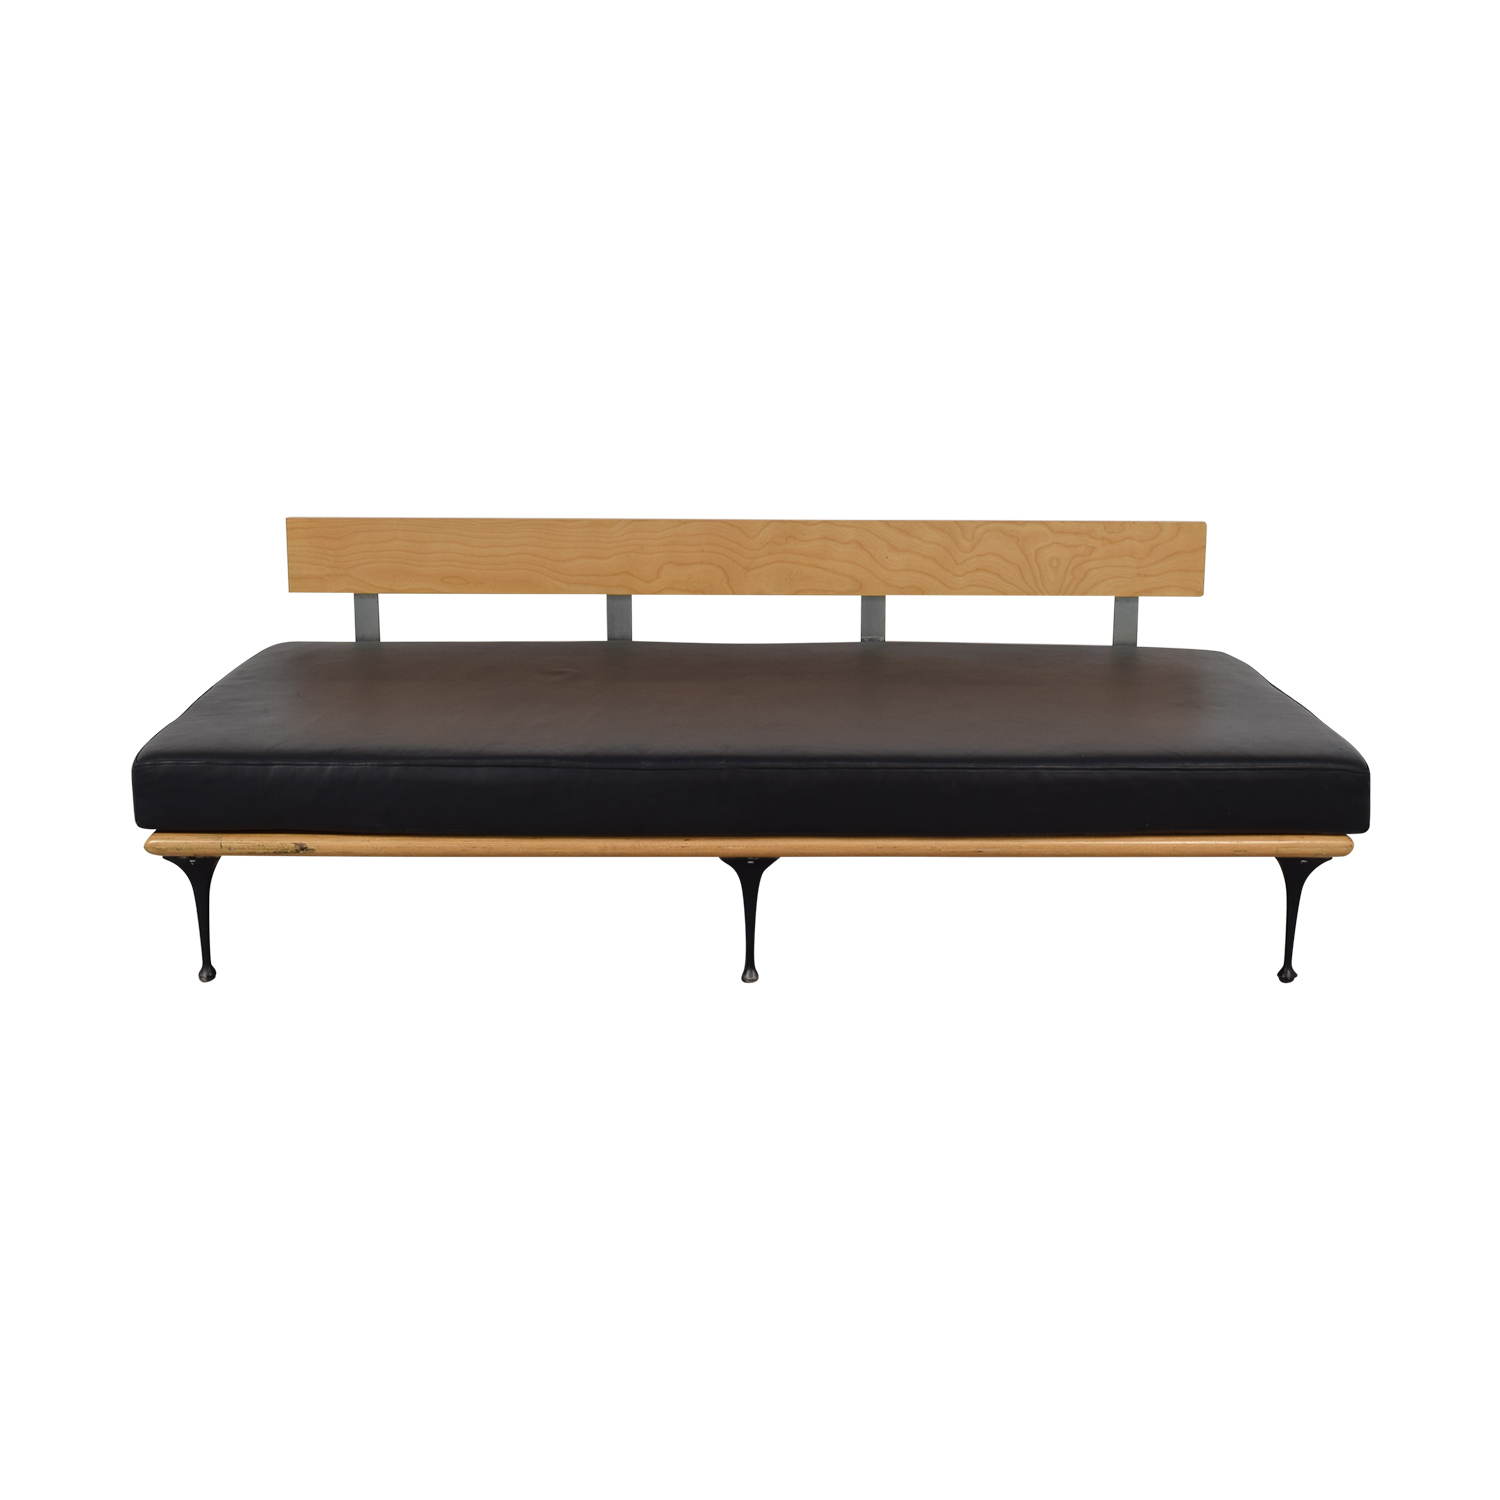 Modernica Modernica Case Study Daybed dimensions